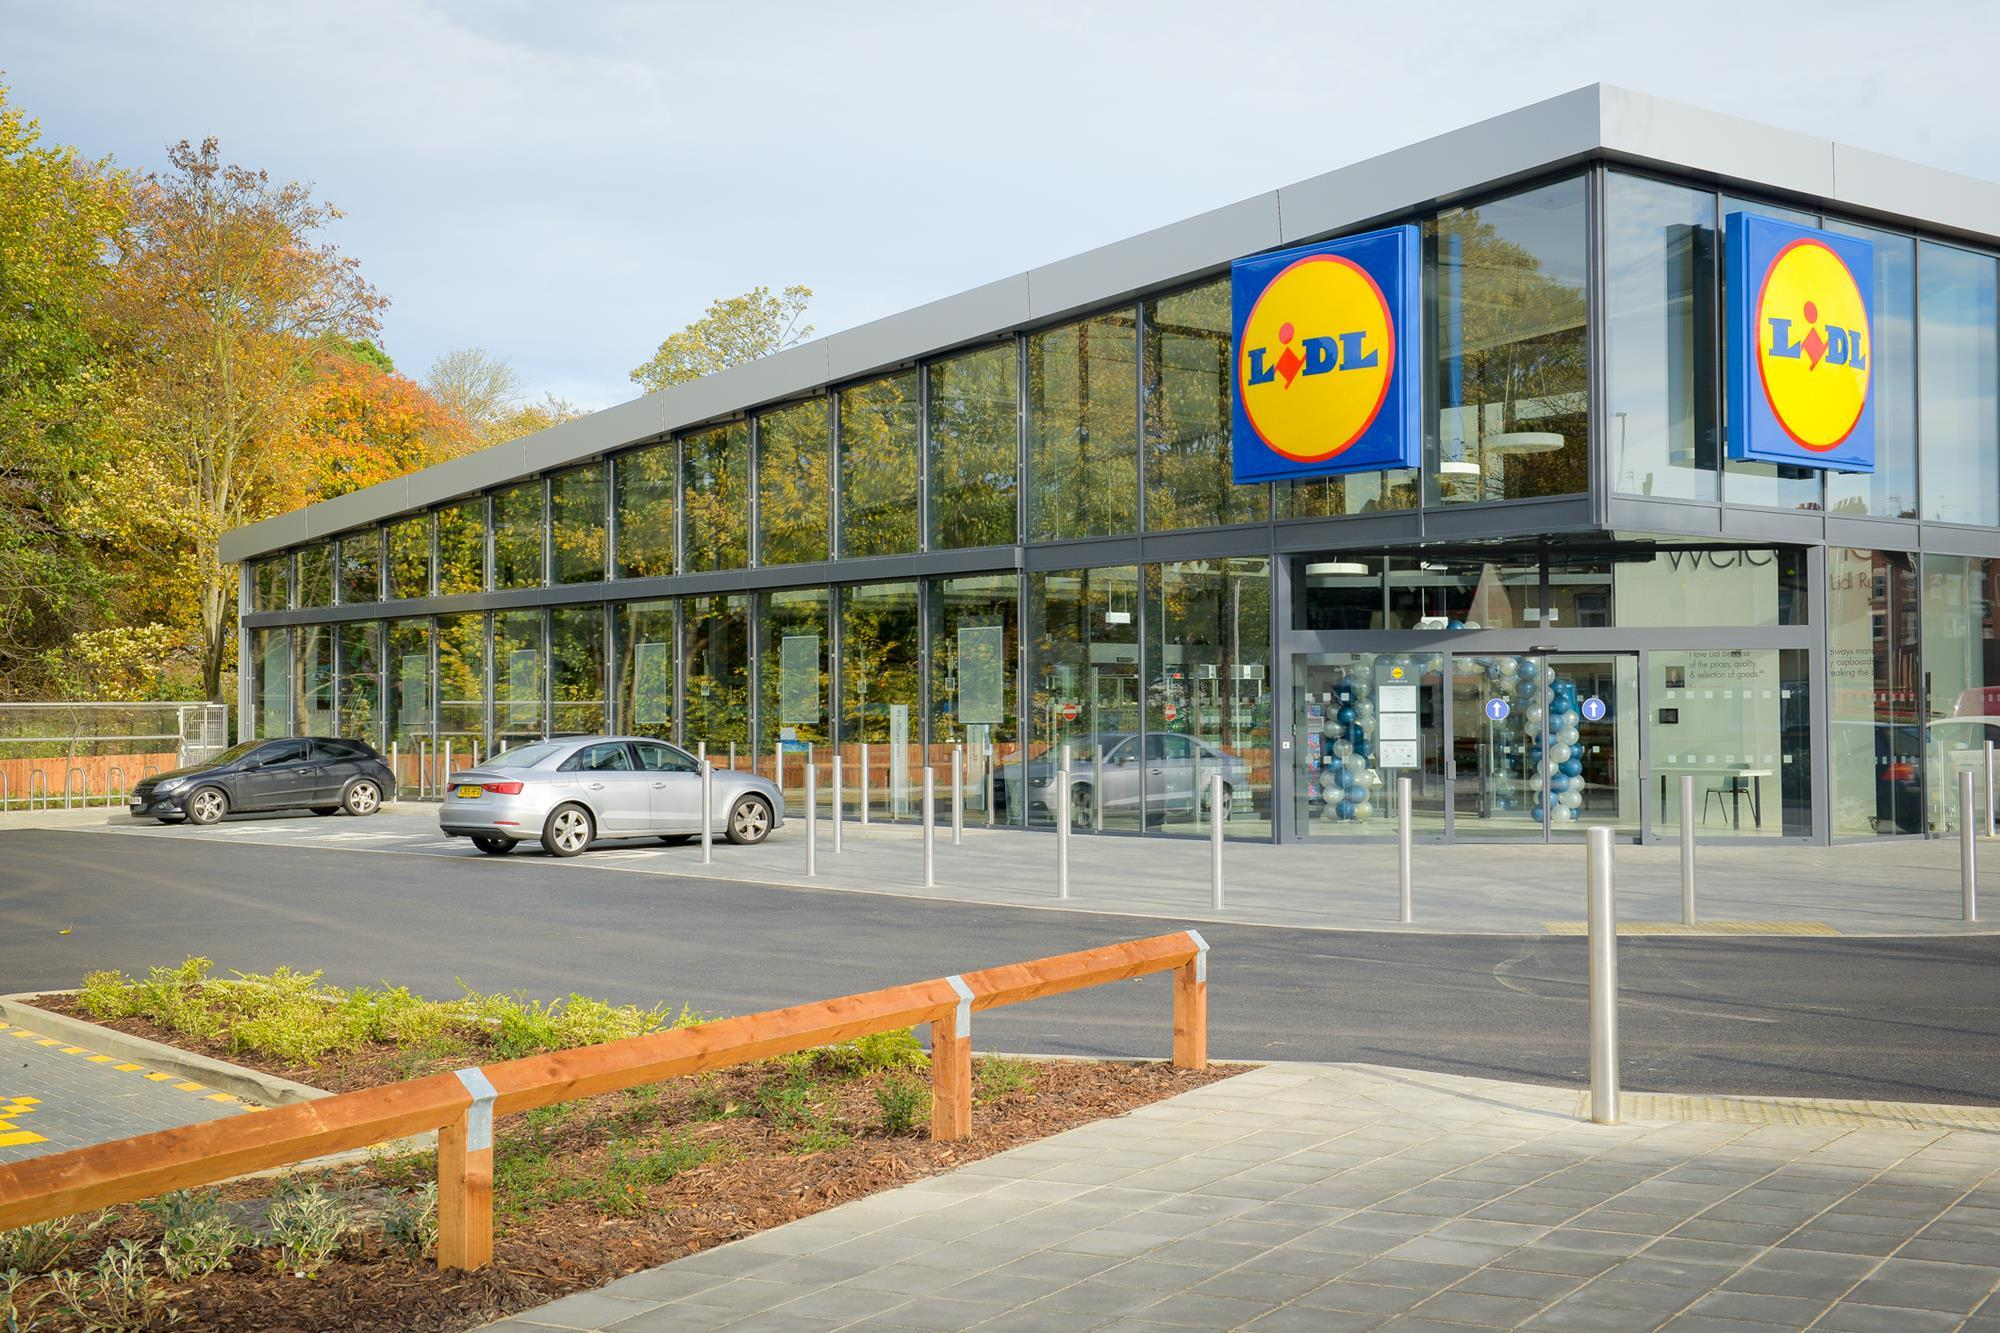 Lidl unveils store of the future amid 15bn property investment lidl unveils store of the future amid 15bn property investment news retail week malvernweather Choice Image